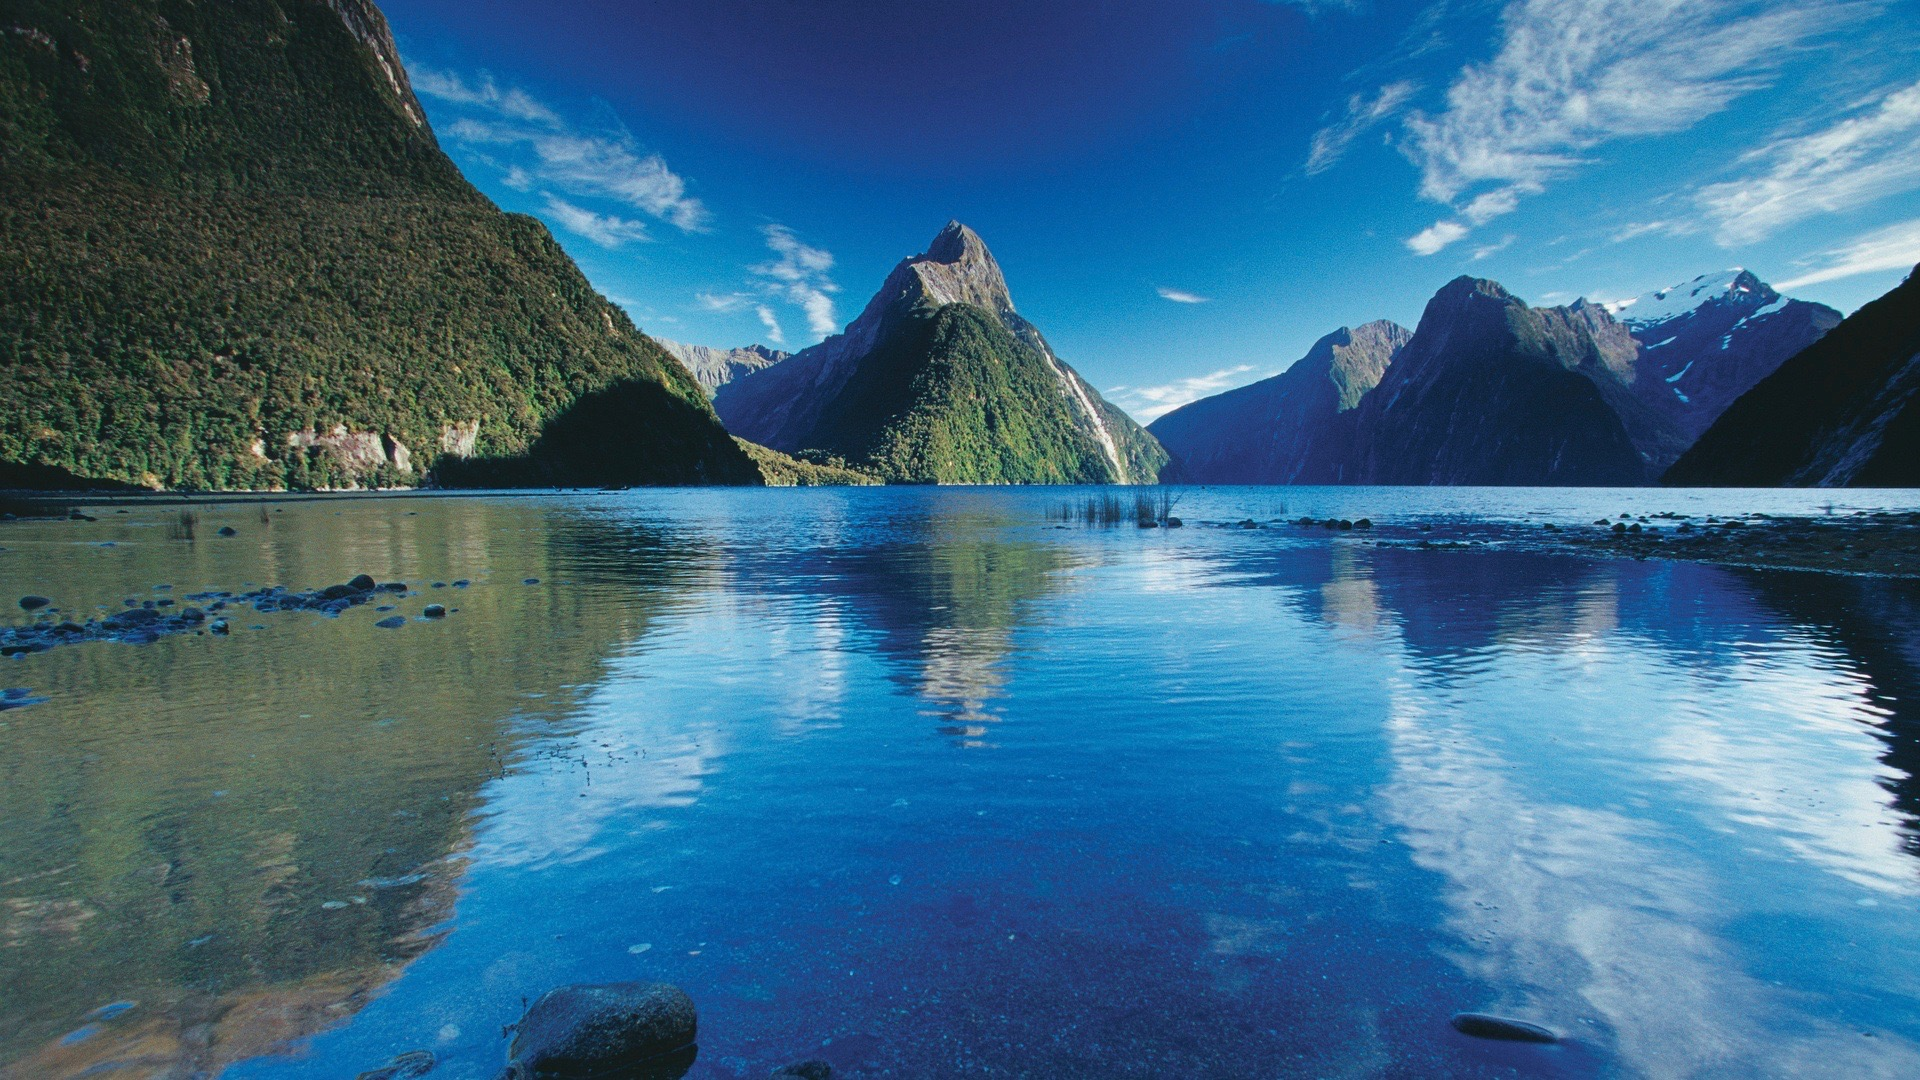 Beyond Middle-earth: What is New Zealand's secret power?